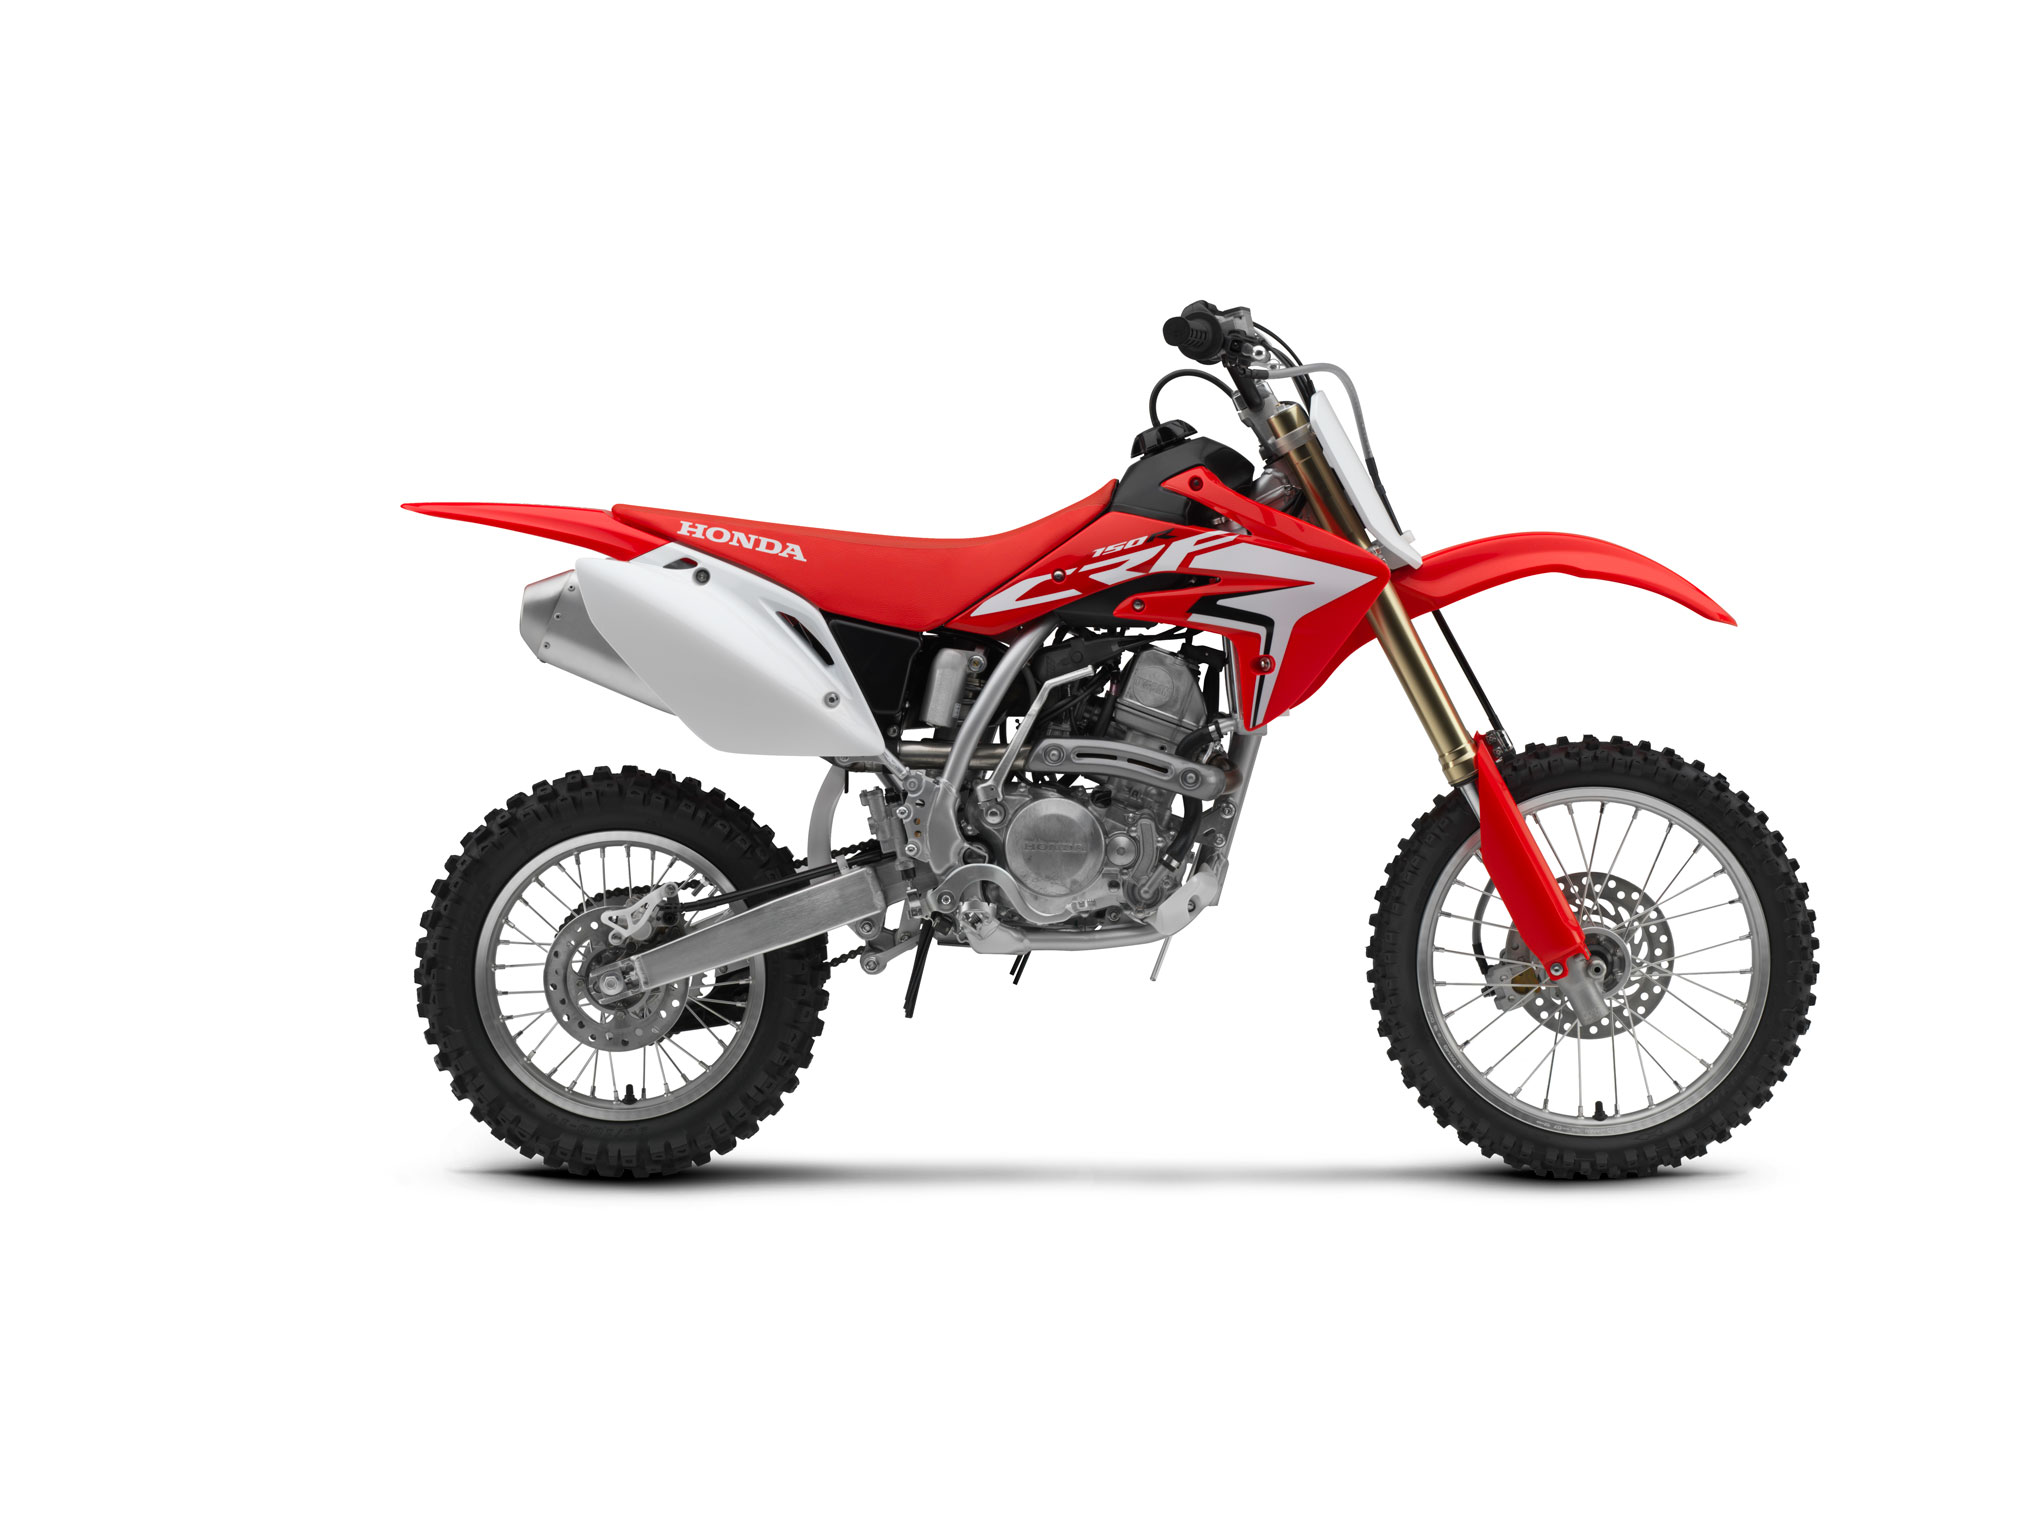 2018 Honda CRF150R Review - TotalMotorcycle